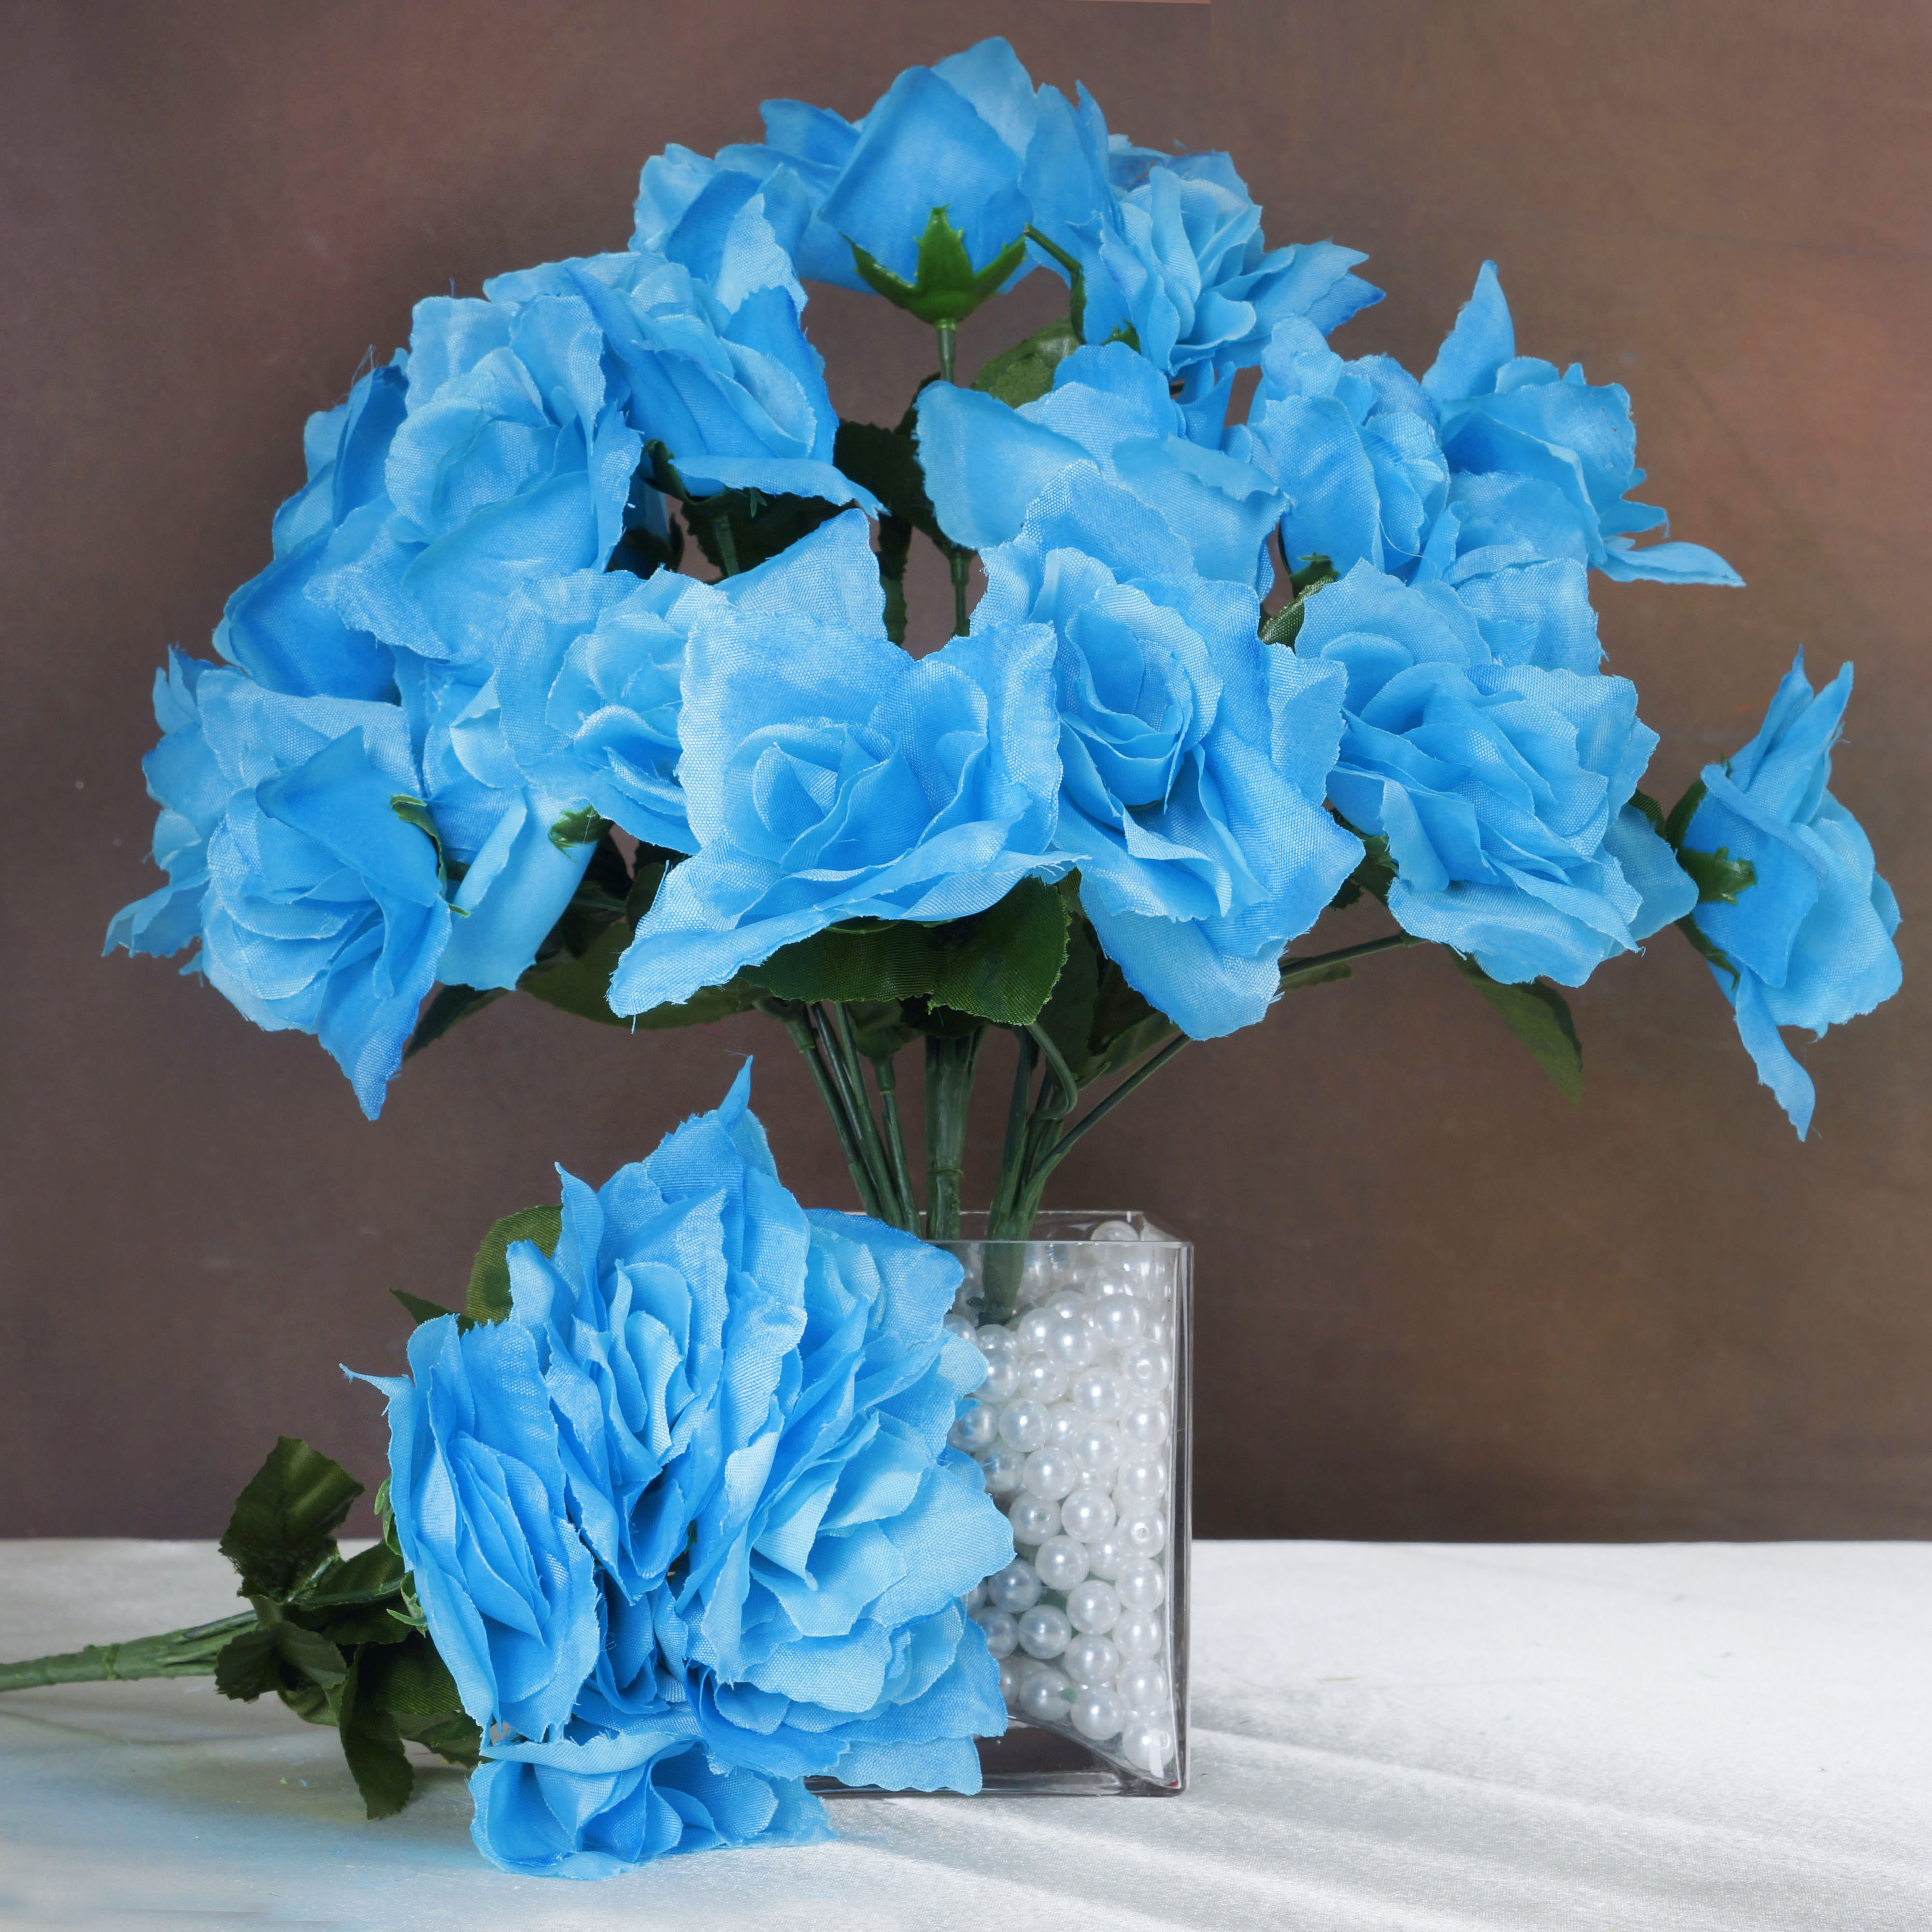 252 OPEN ROSES Wedding Wholesale Discount SILK Flowers Bouquets for ...